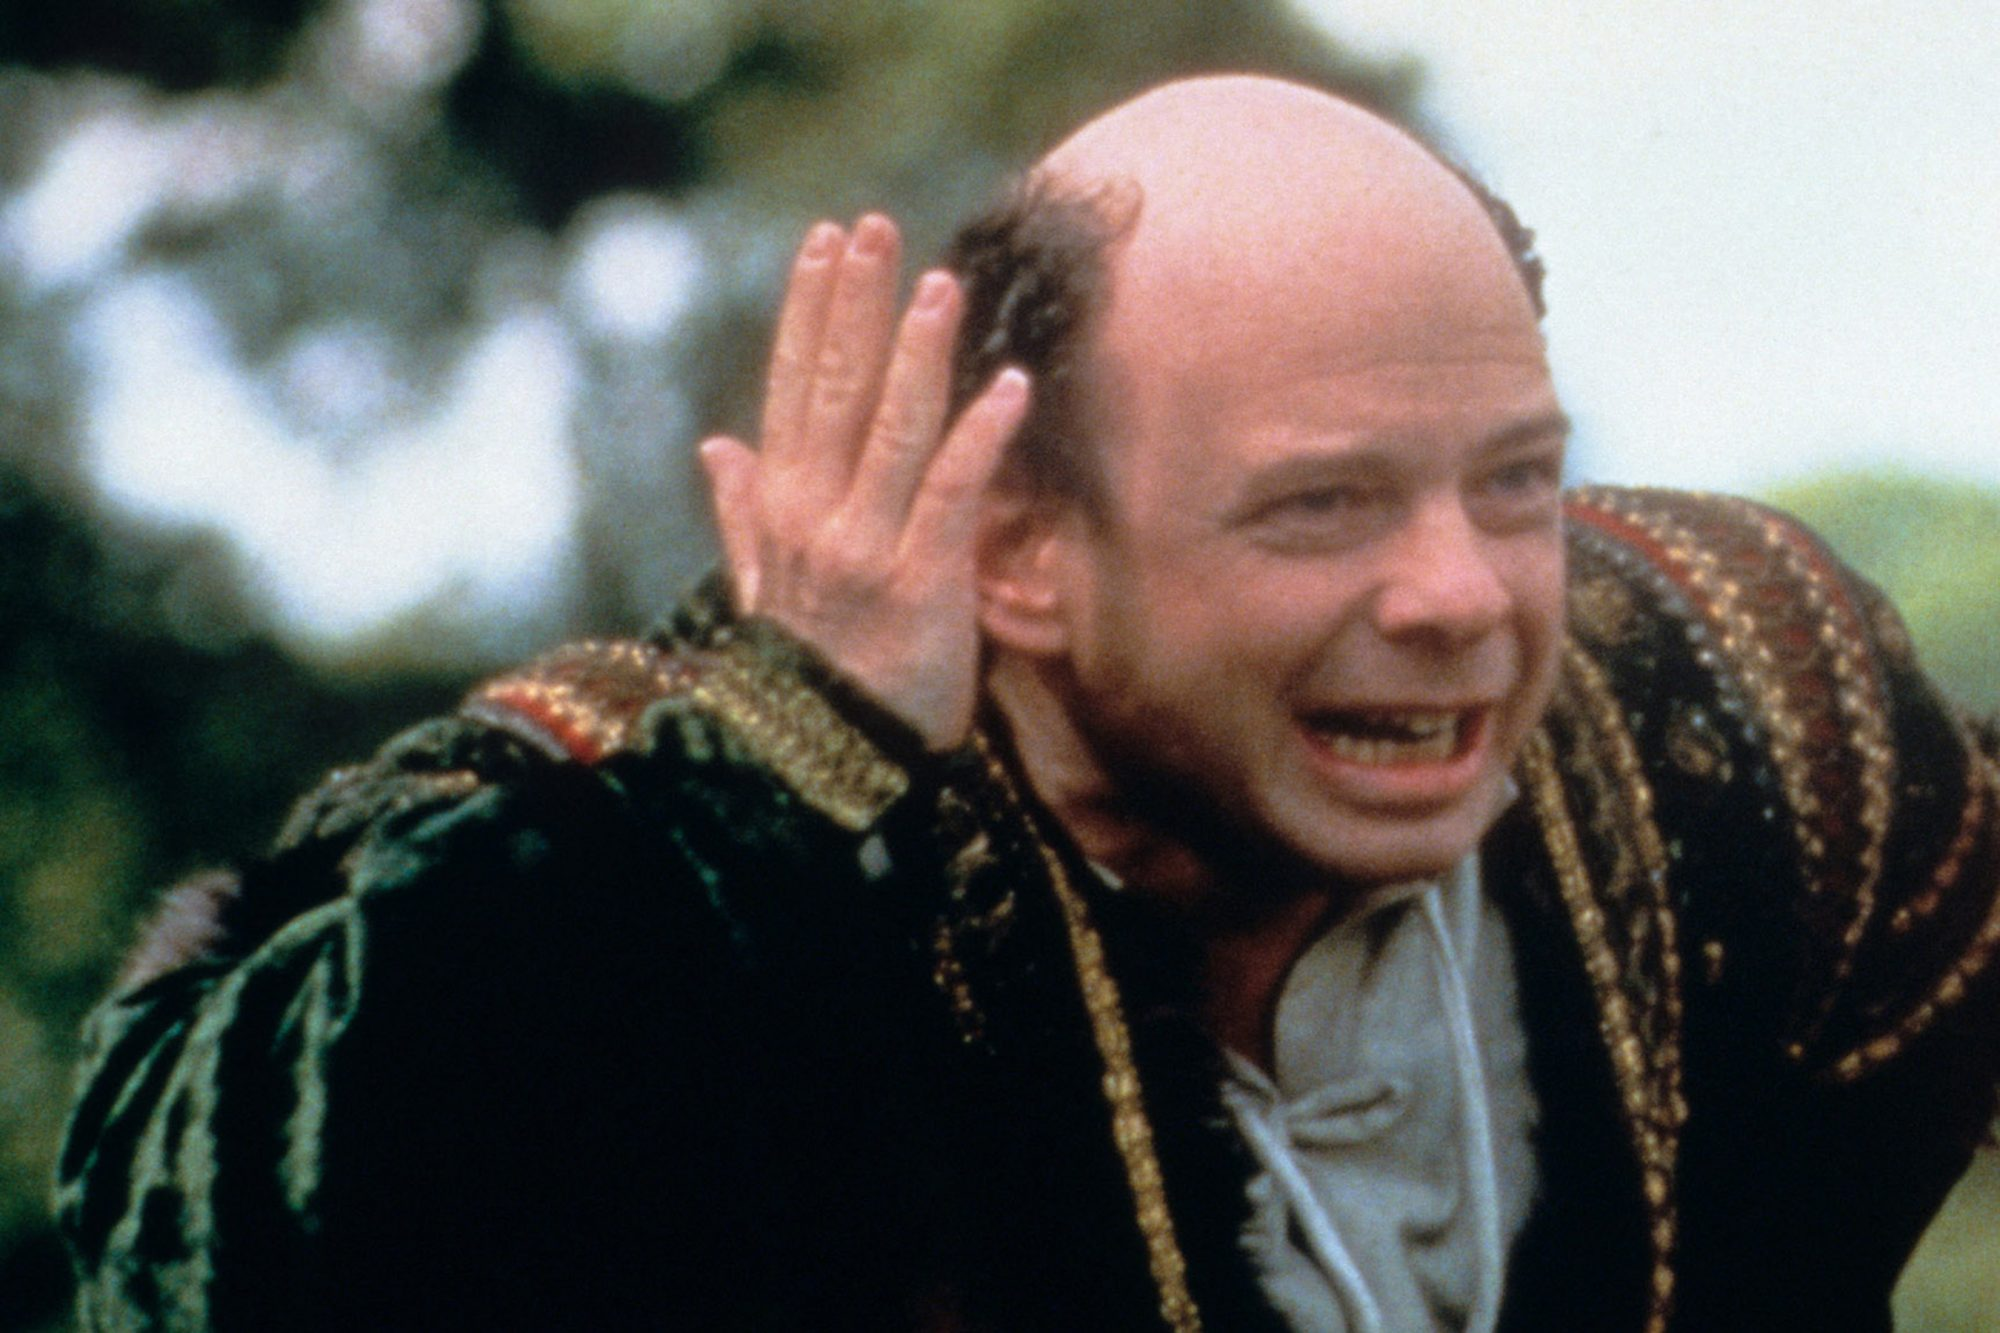 THE PRINCESS BRIDE, from left: Wallace Shawn, Robin Wright, 1987. ©20th Century-Fox Film Corporation